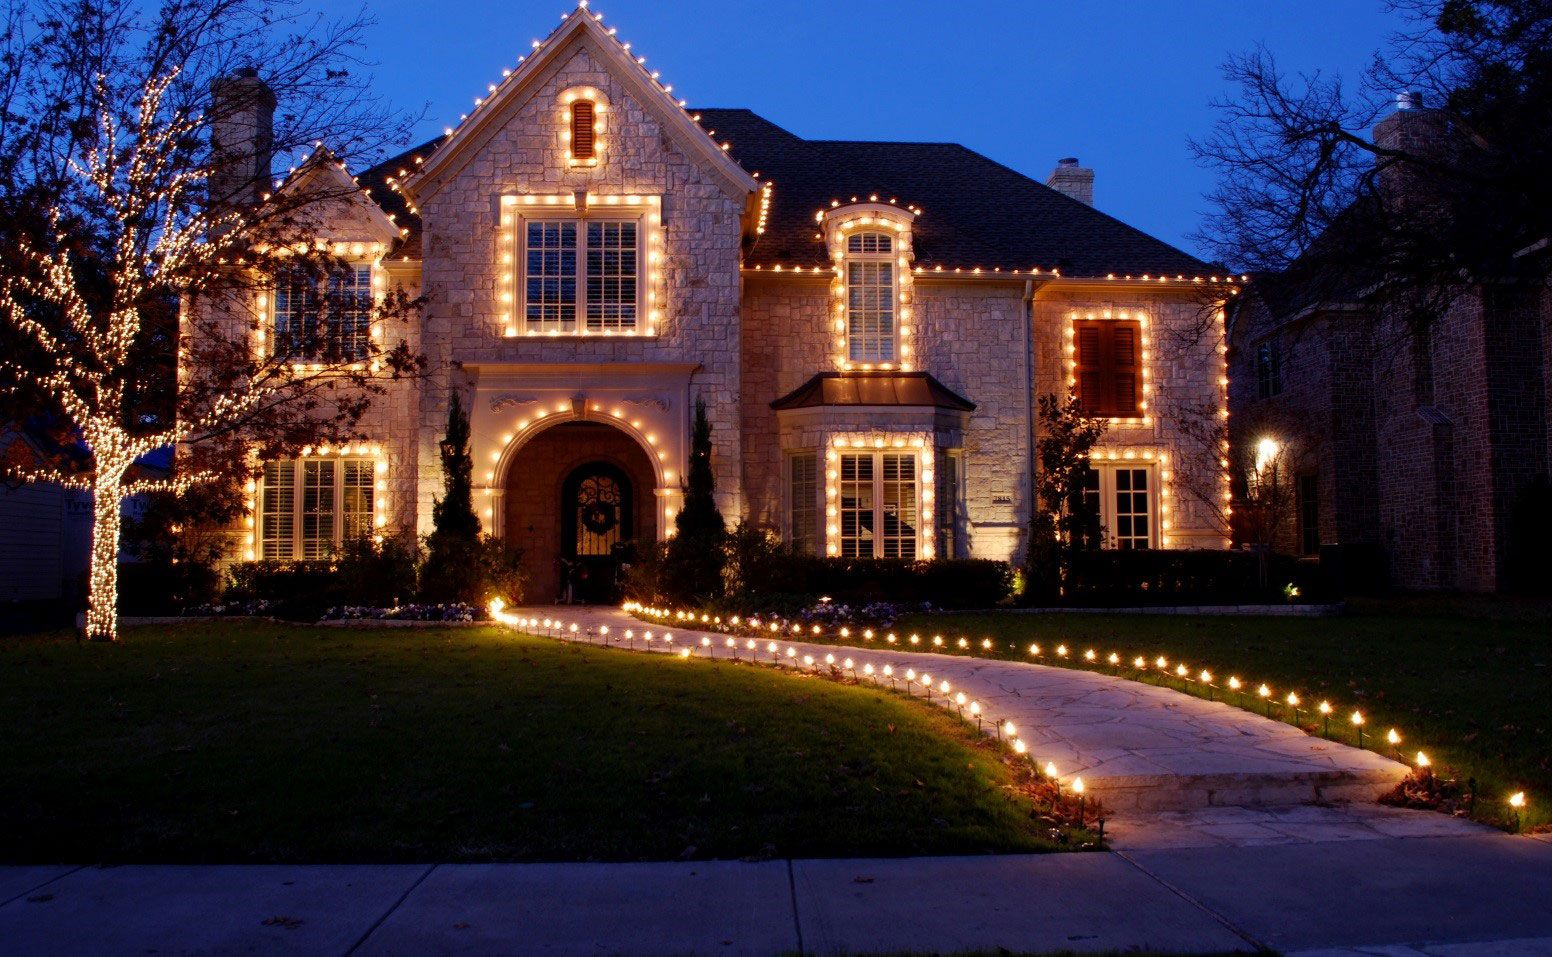 Long Island Houses Christmas Lights 2020 Long Island Christmas Light Installation in 2020 | Exterior